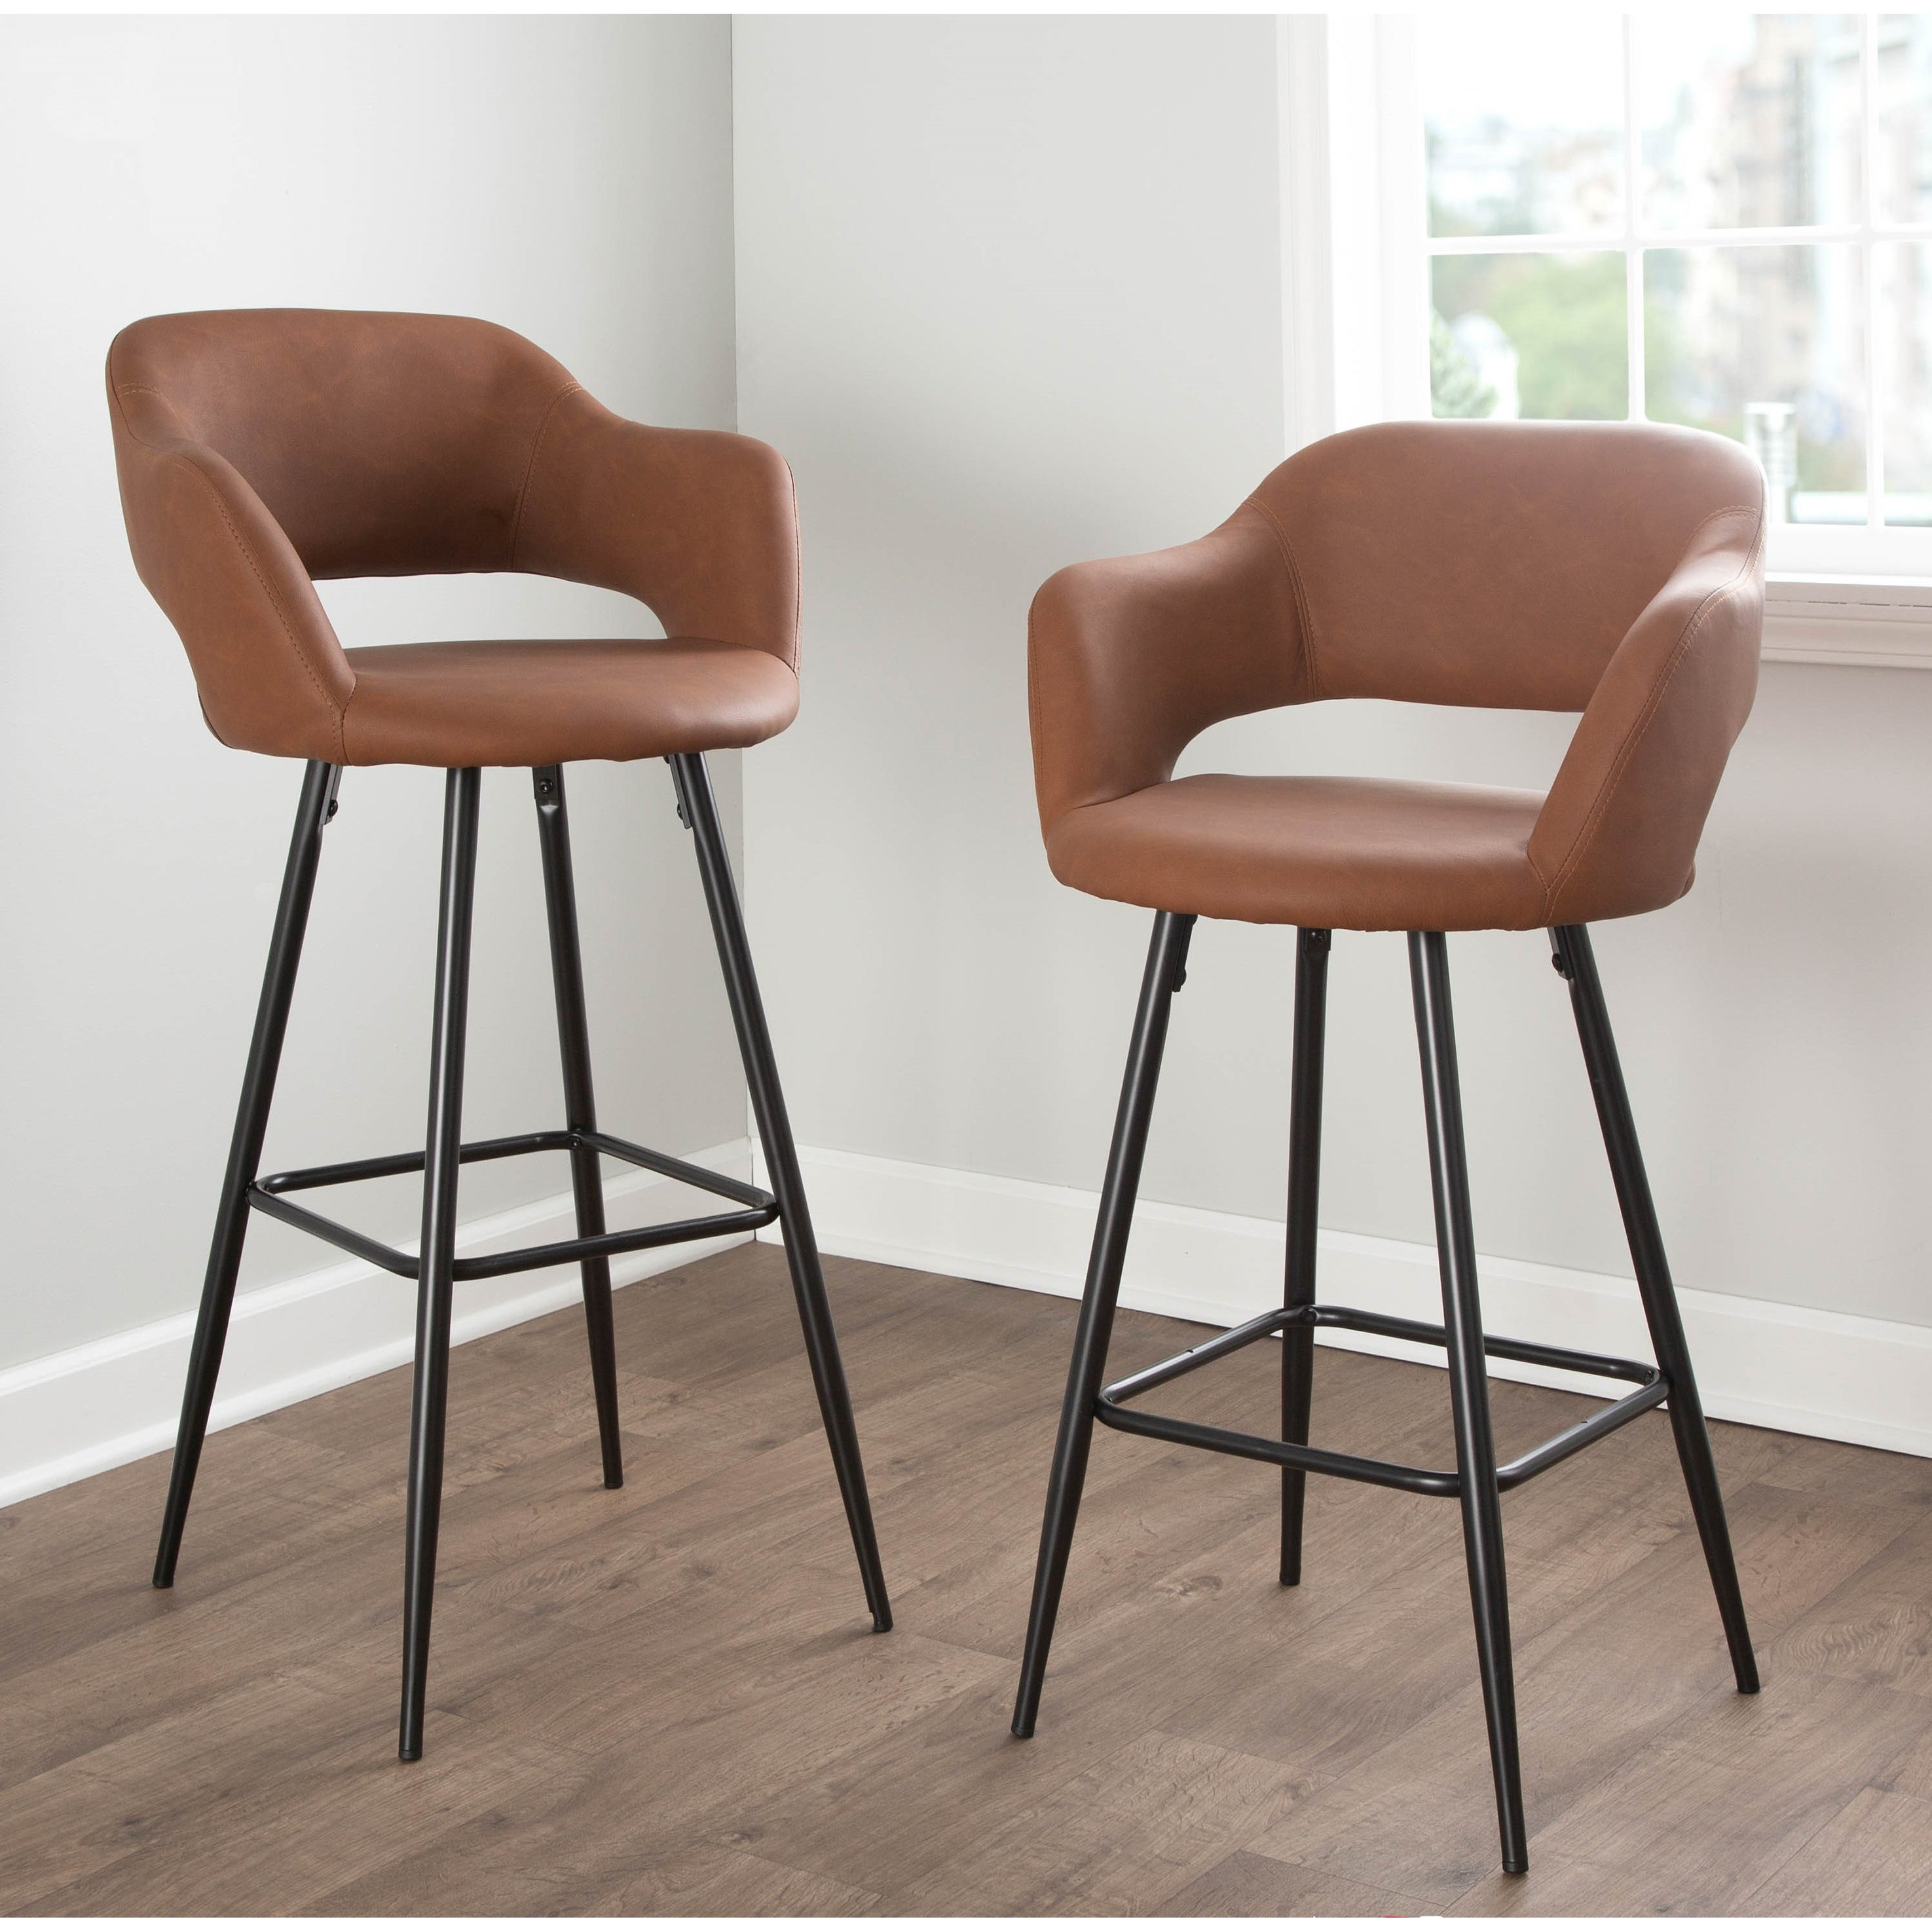 Picture of: Carson Carrington Vallen Faux Leather Bar Stools Set Of 2 N A On Sale Overstock 24238403